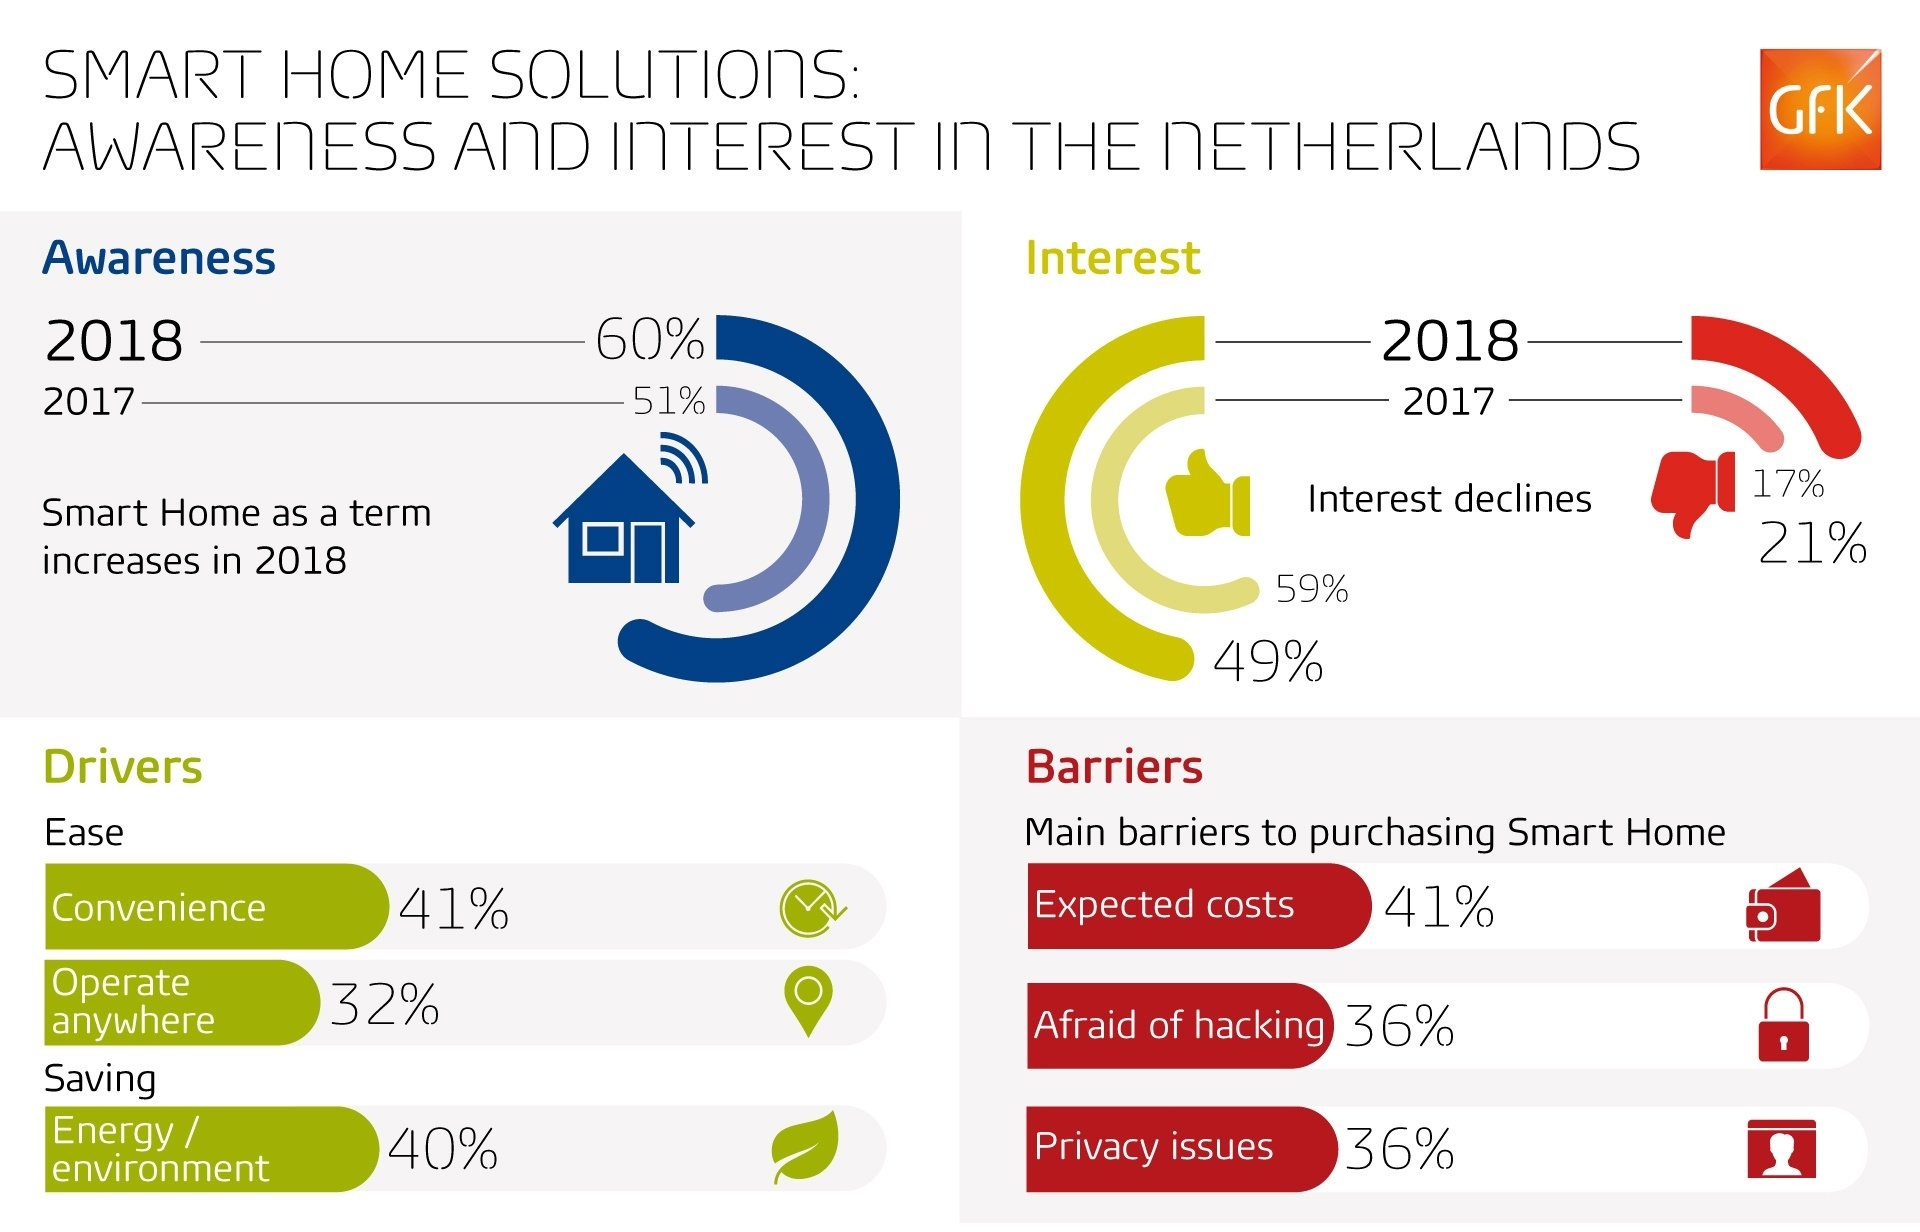 GfK_Smart_home_report_2018_Insights_barriers_fears-511830-edited